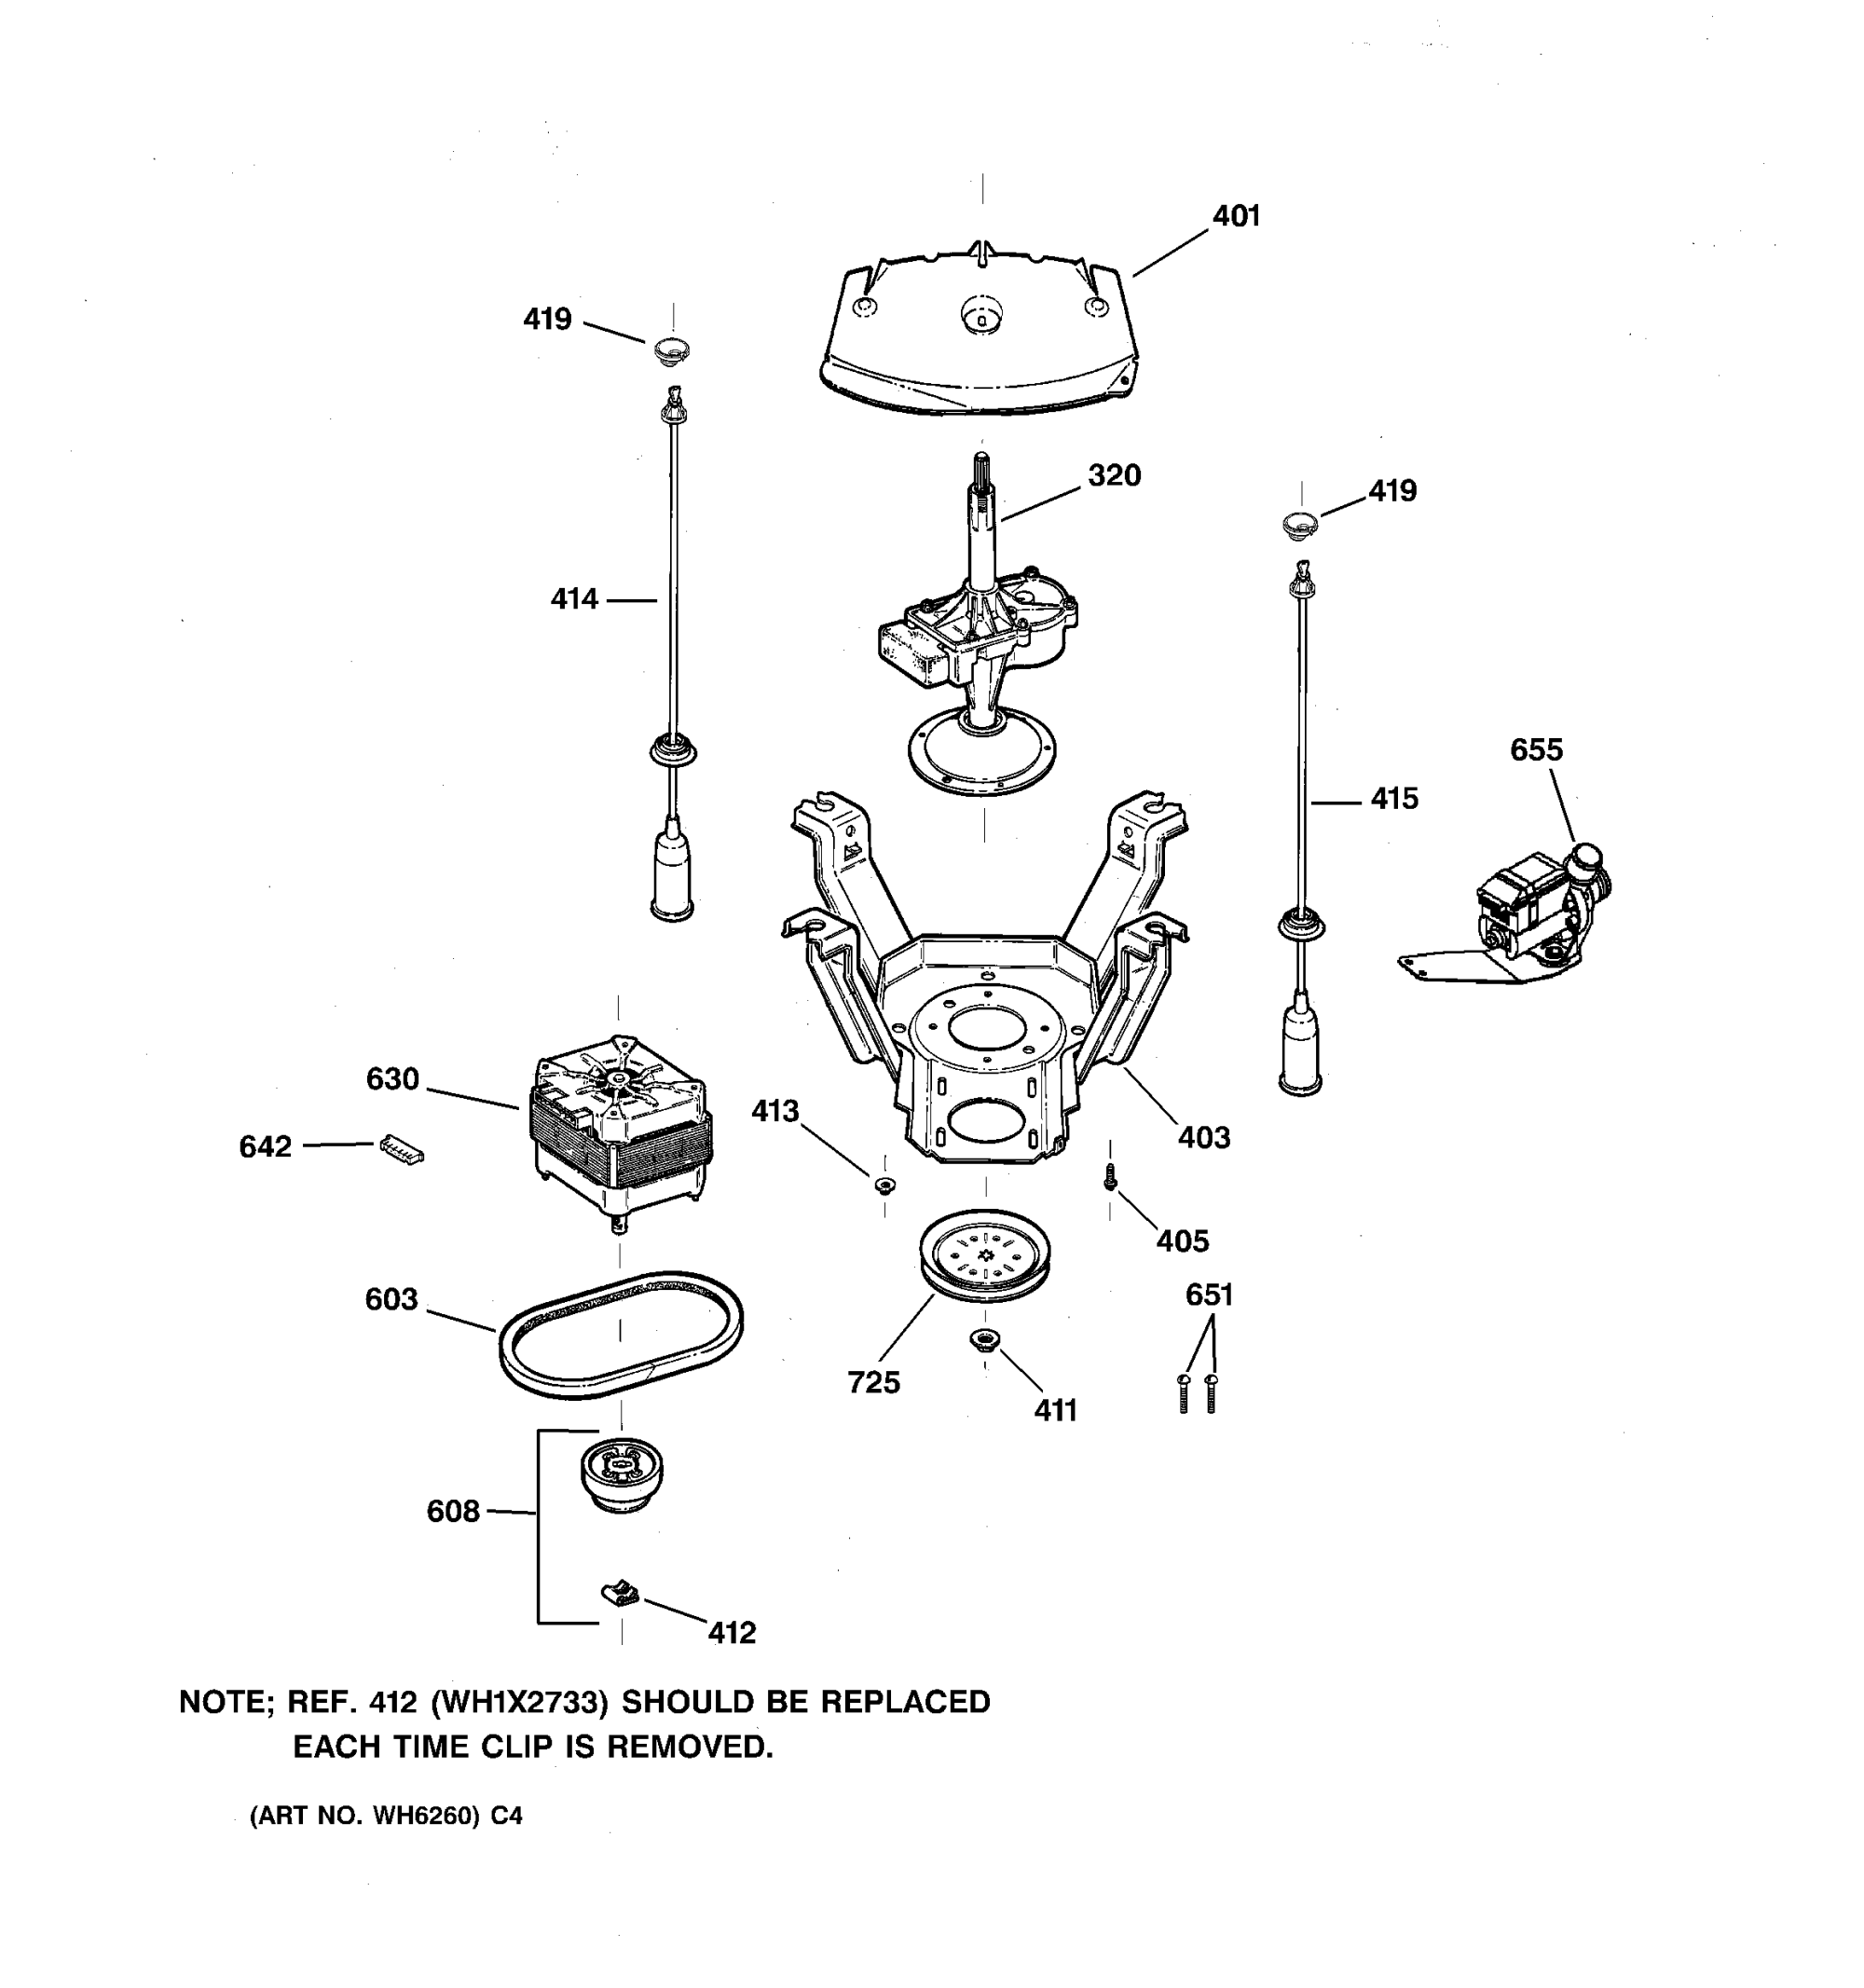 hight resolution of general electric washing machine parts diagram the best machine general electric washer parts diagram